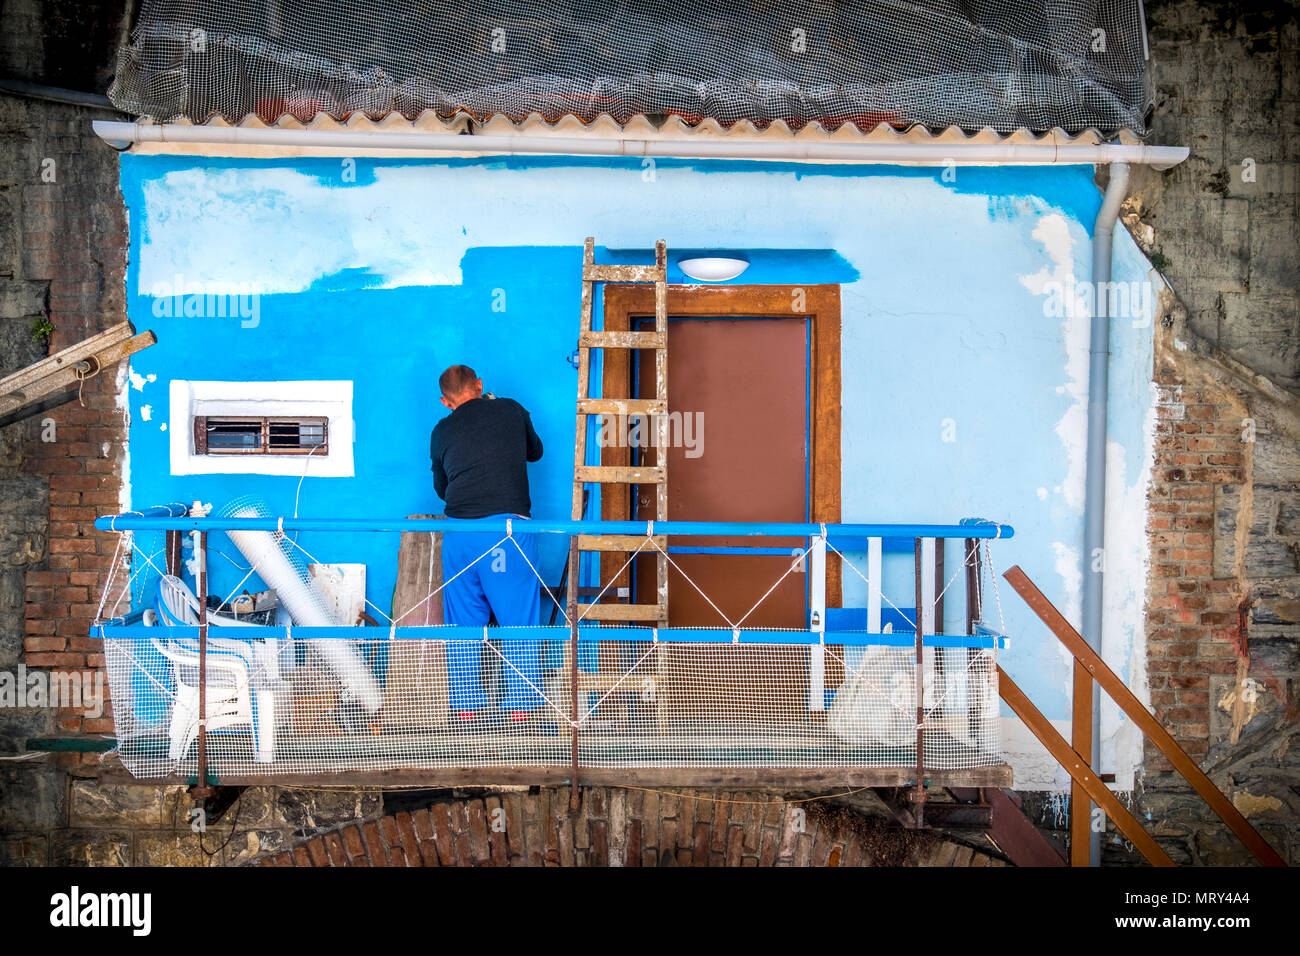 painter on scaffolding restoring old wall with blue paint - Stock Image